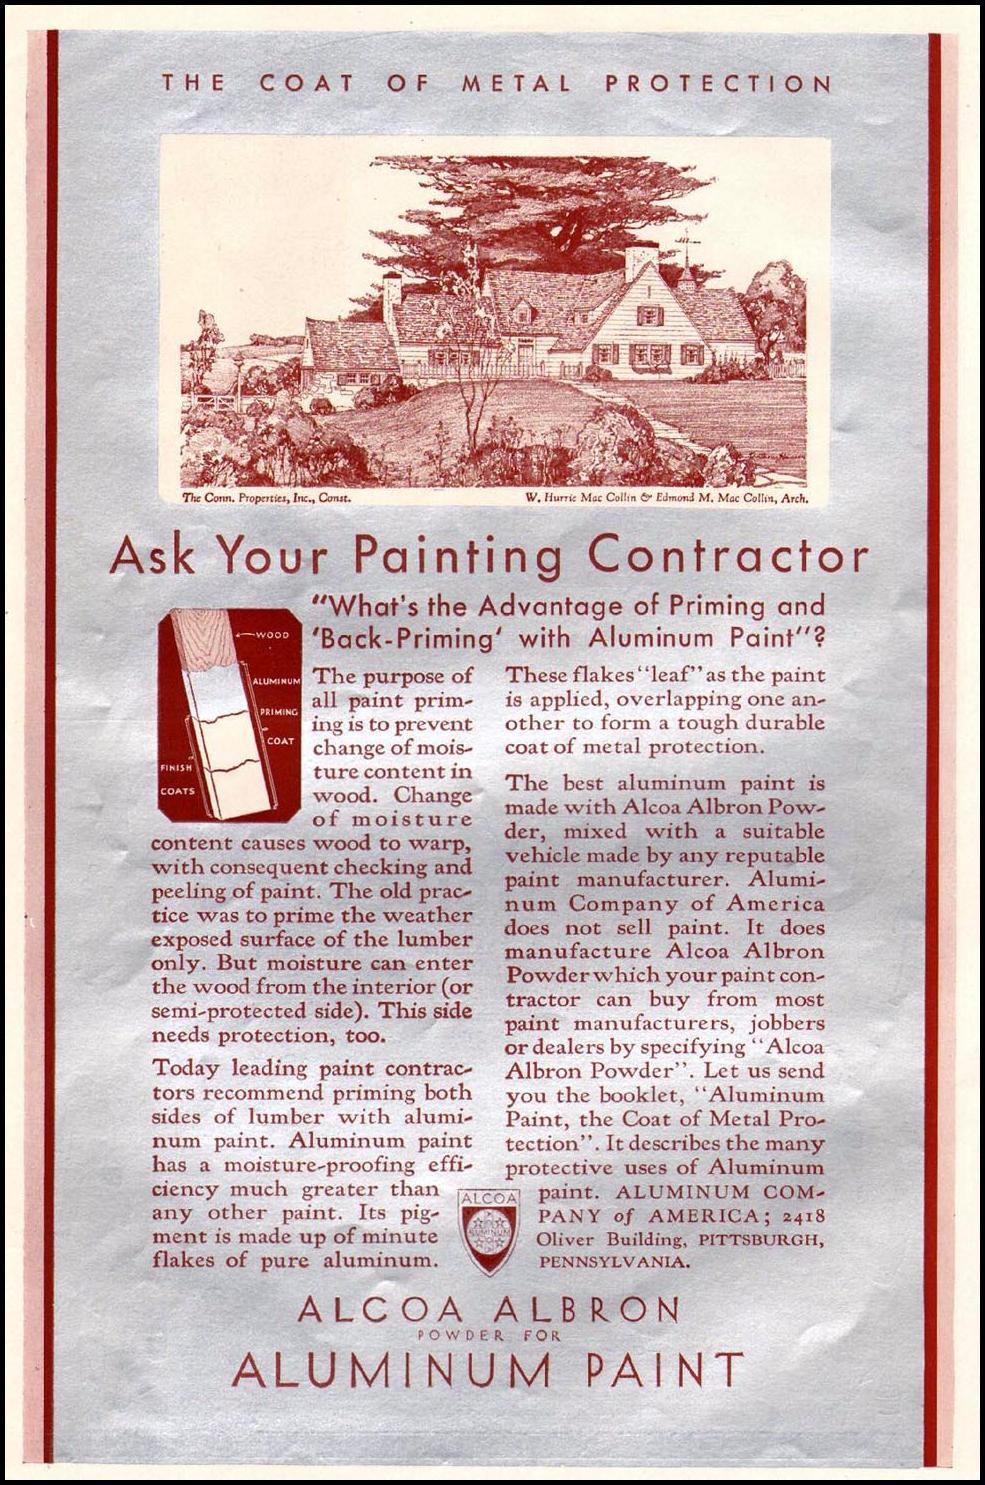 ALCOA ALBRON ALUMINUM PAINT